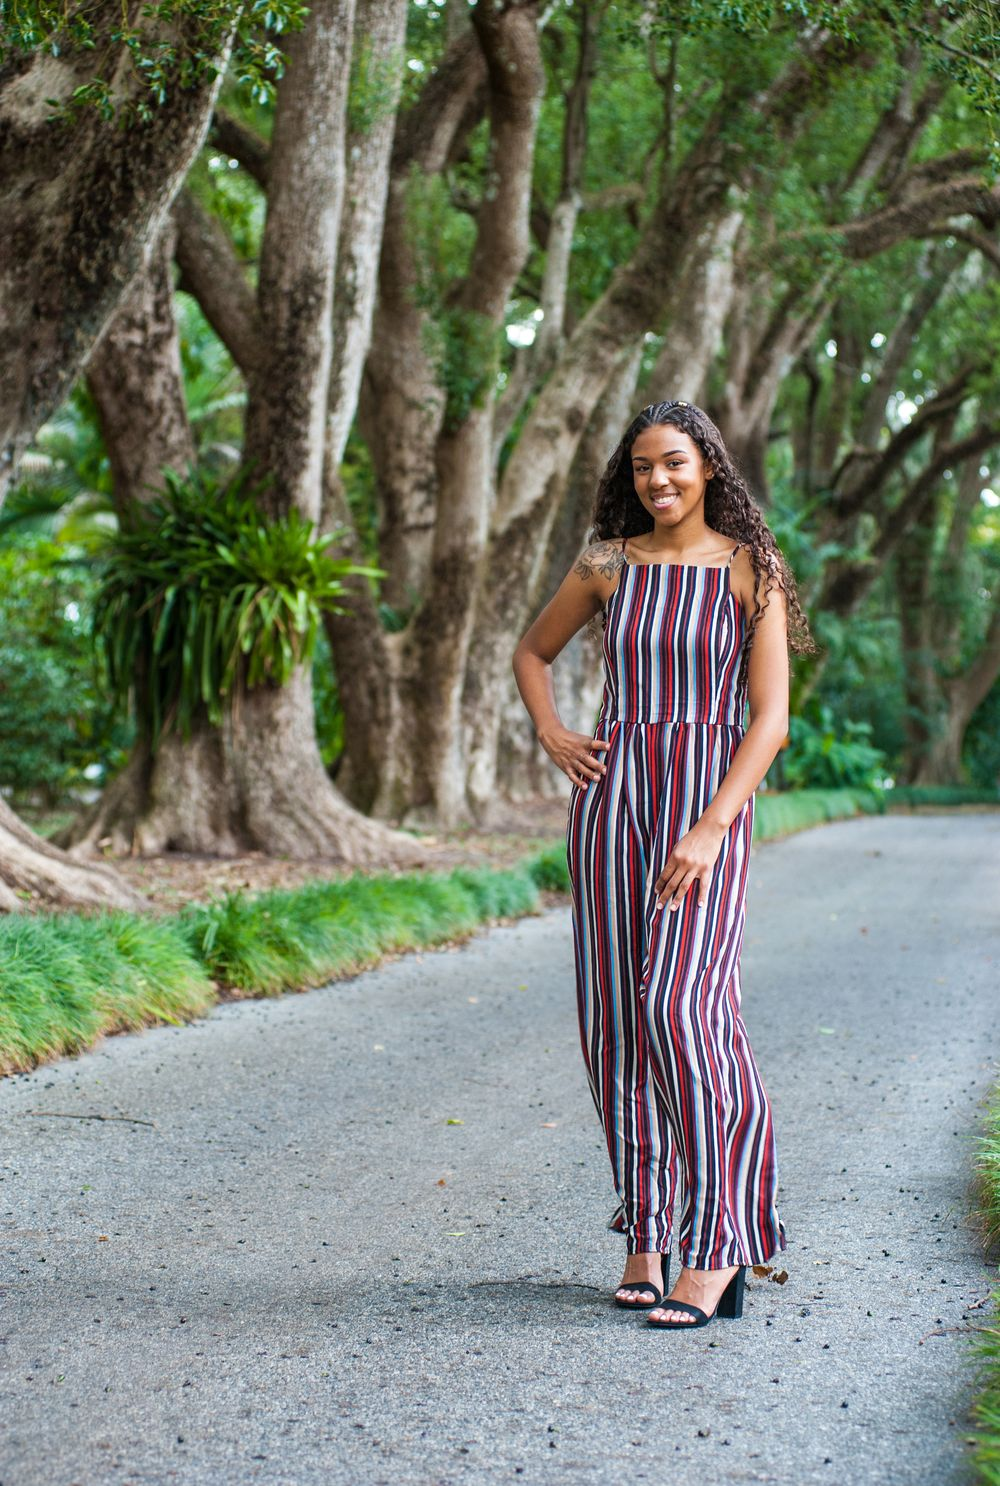 High school senior girl stands amongst camphor trees in a stylish striped jumper